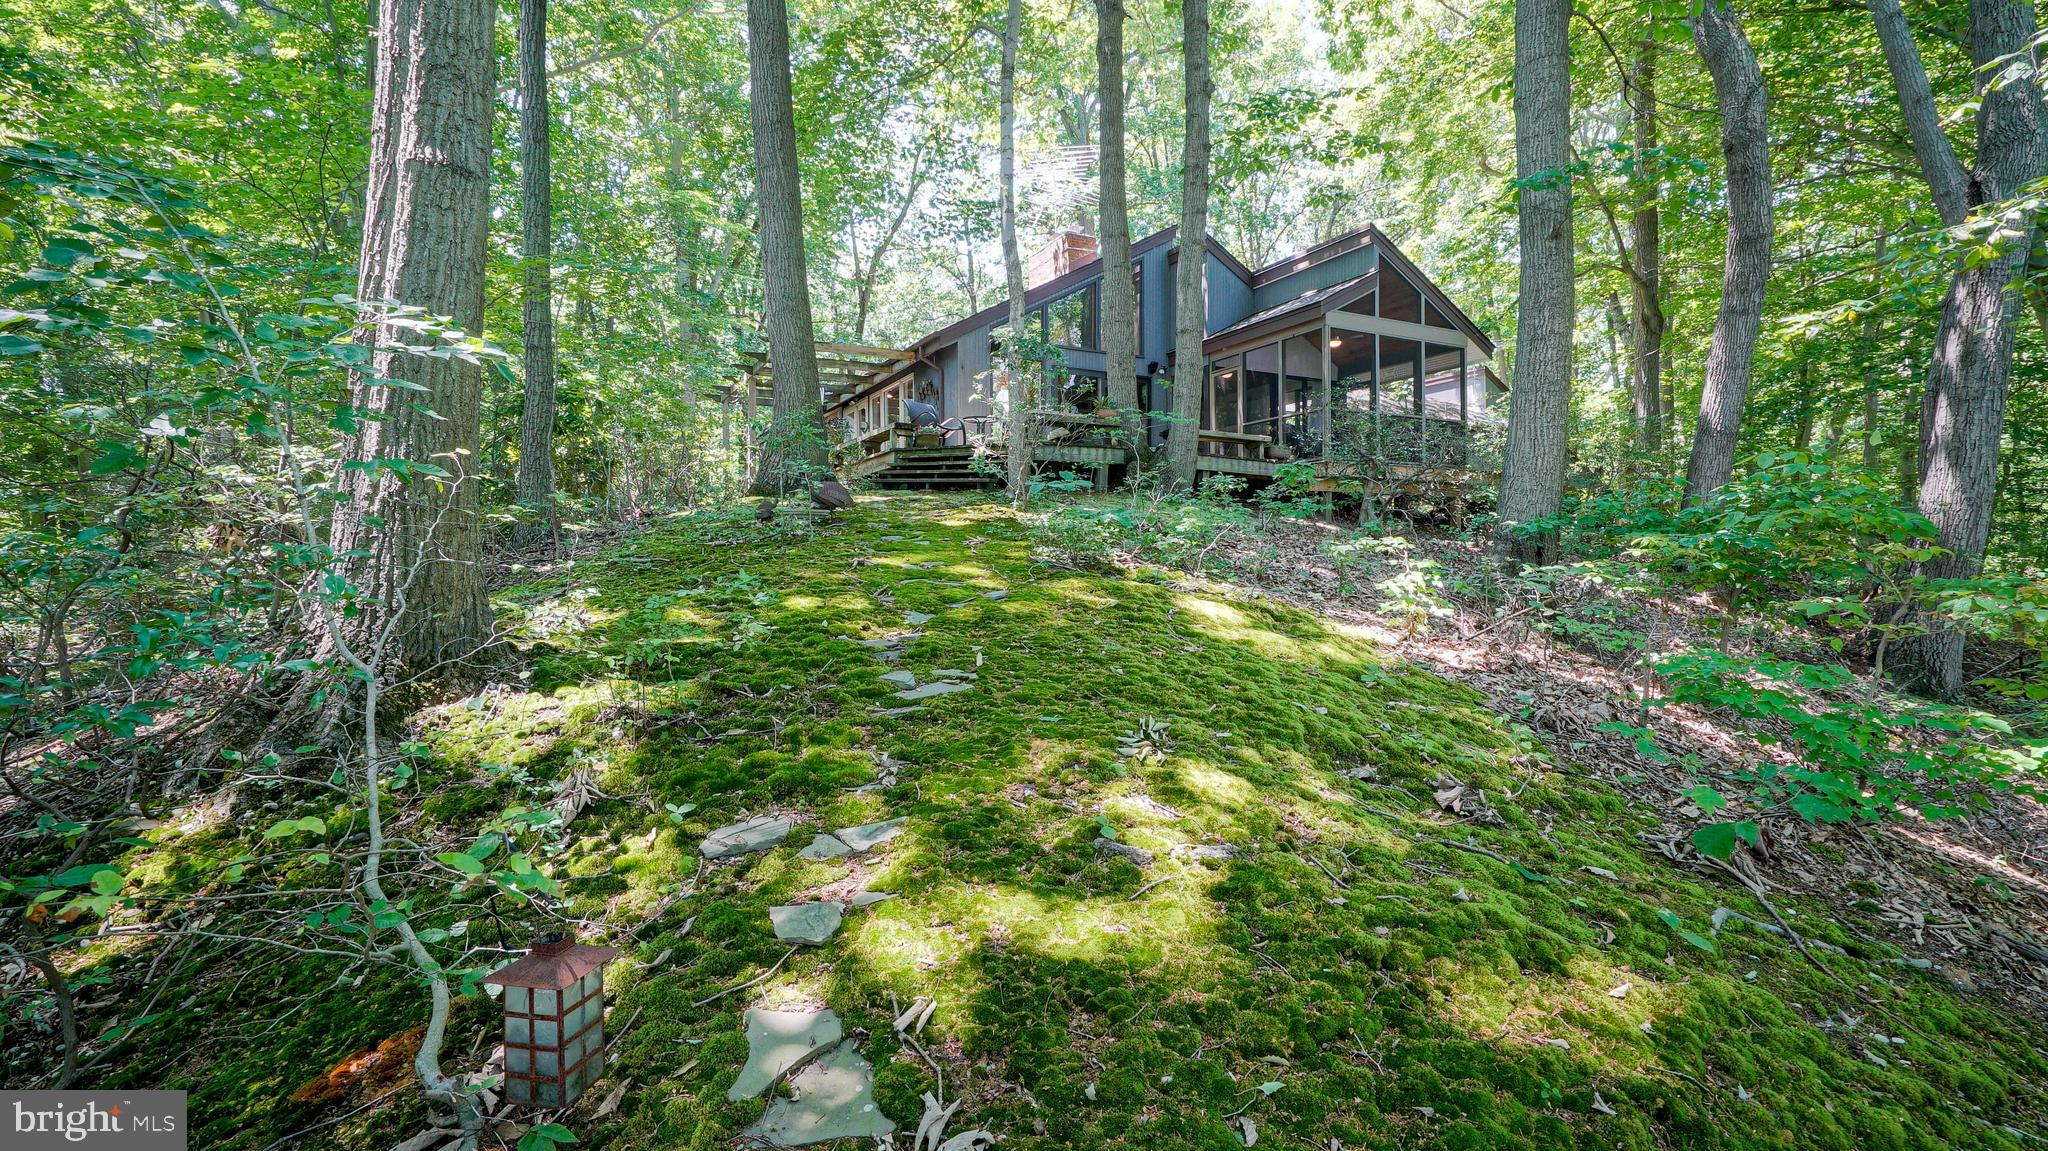 24284 MACS LANE, WORTON, MD 21678